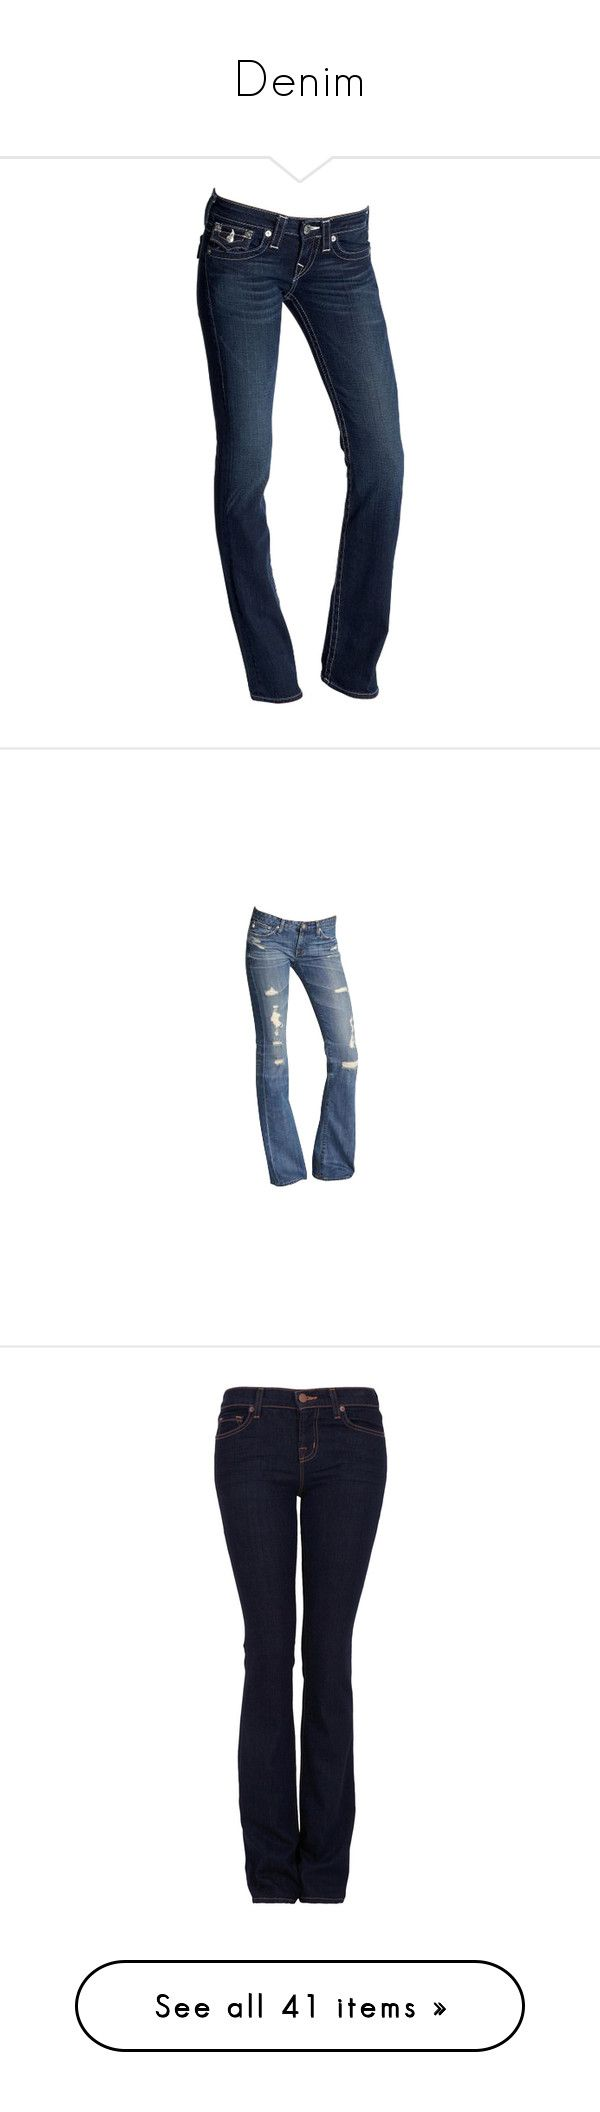 """""""Denim"""" by bethanito ❤ liked on Polyvore featuring jeans, pants, bottoms, calças, denim, back flap pocket jeans, low rise jeans, faded jeans, true religion jeans and dark wash straight leg jeans"""